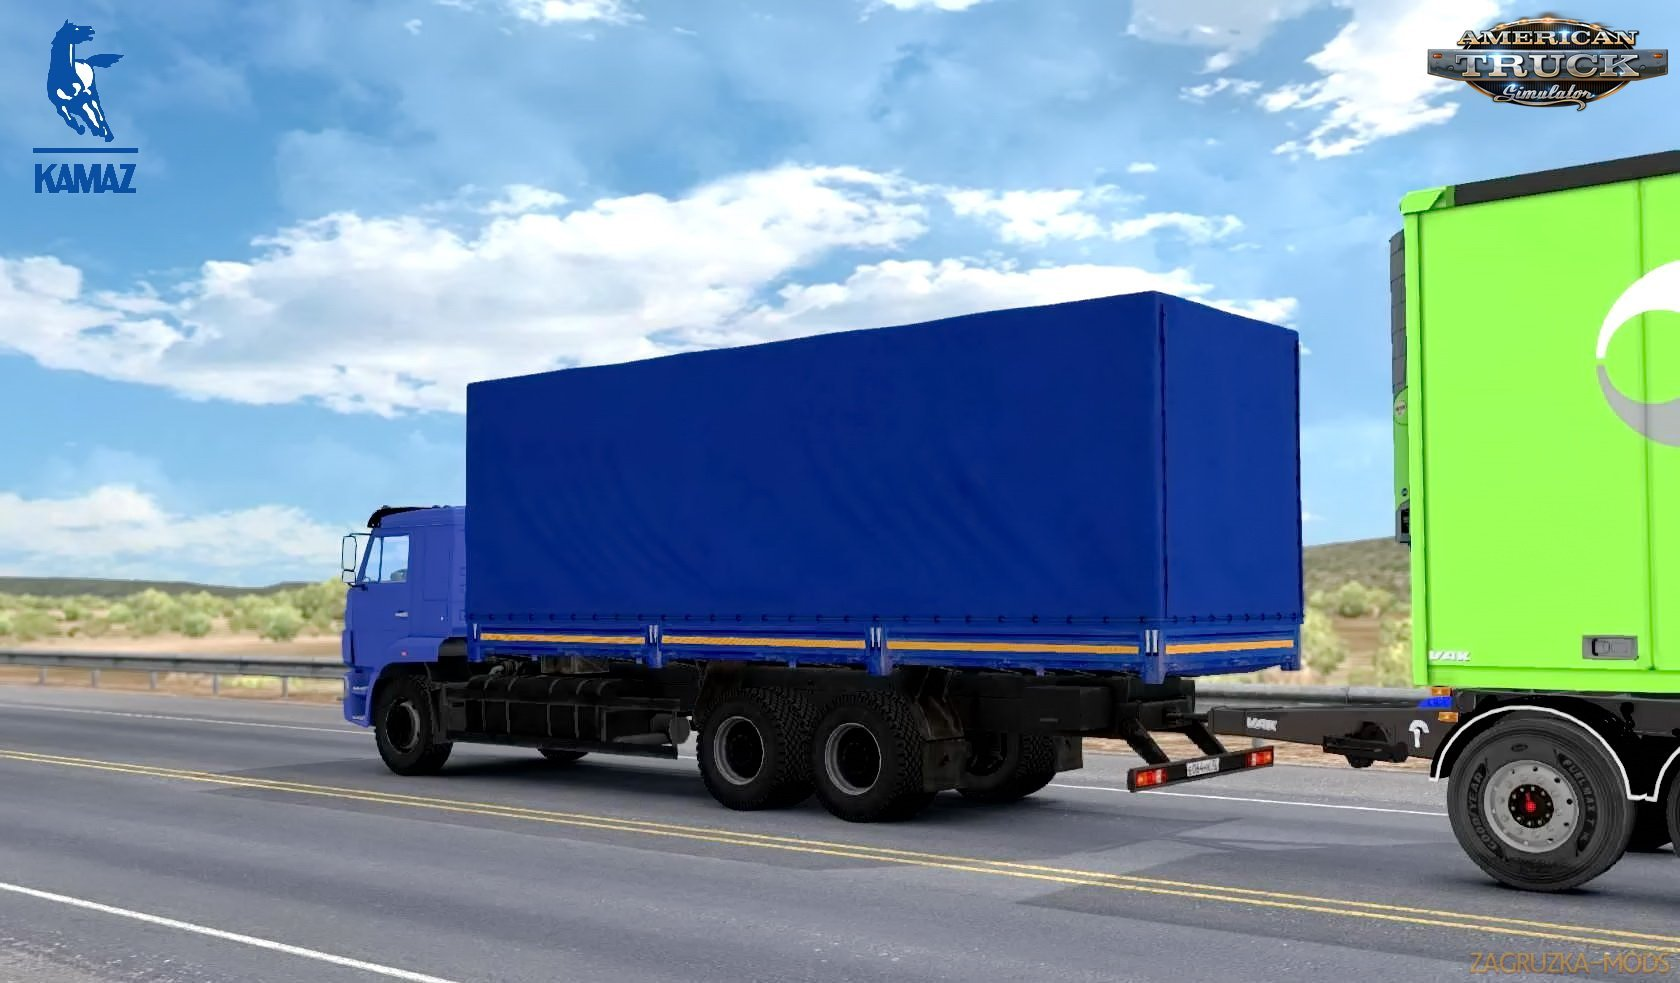 KamAZ 65117-65225 + BDF Trailer v2.0 (1.32.x) for ATS